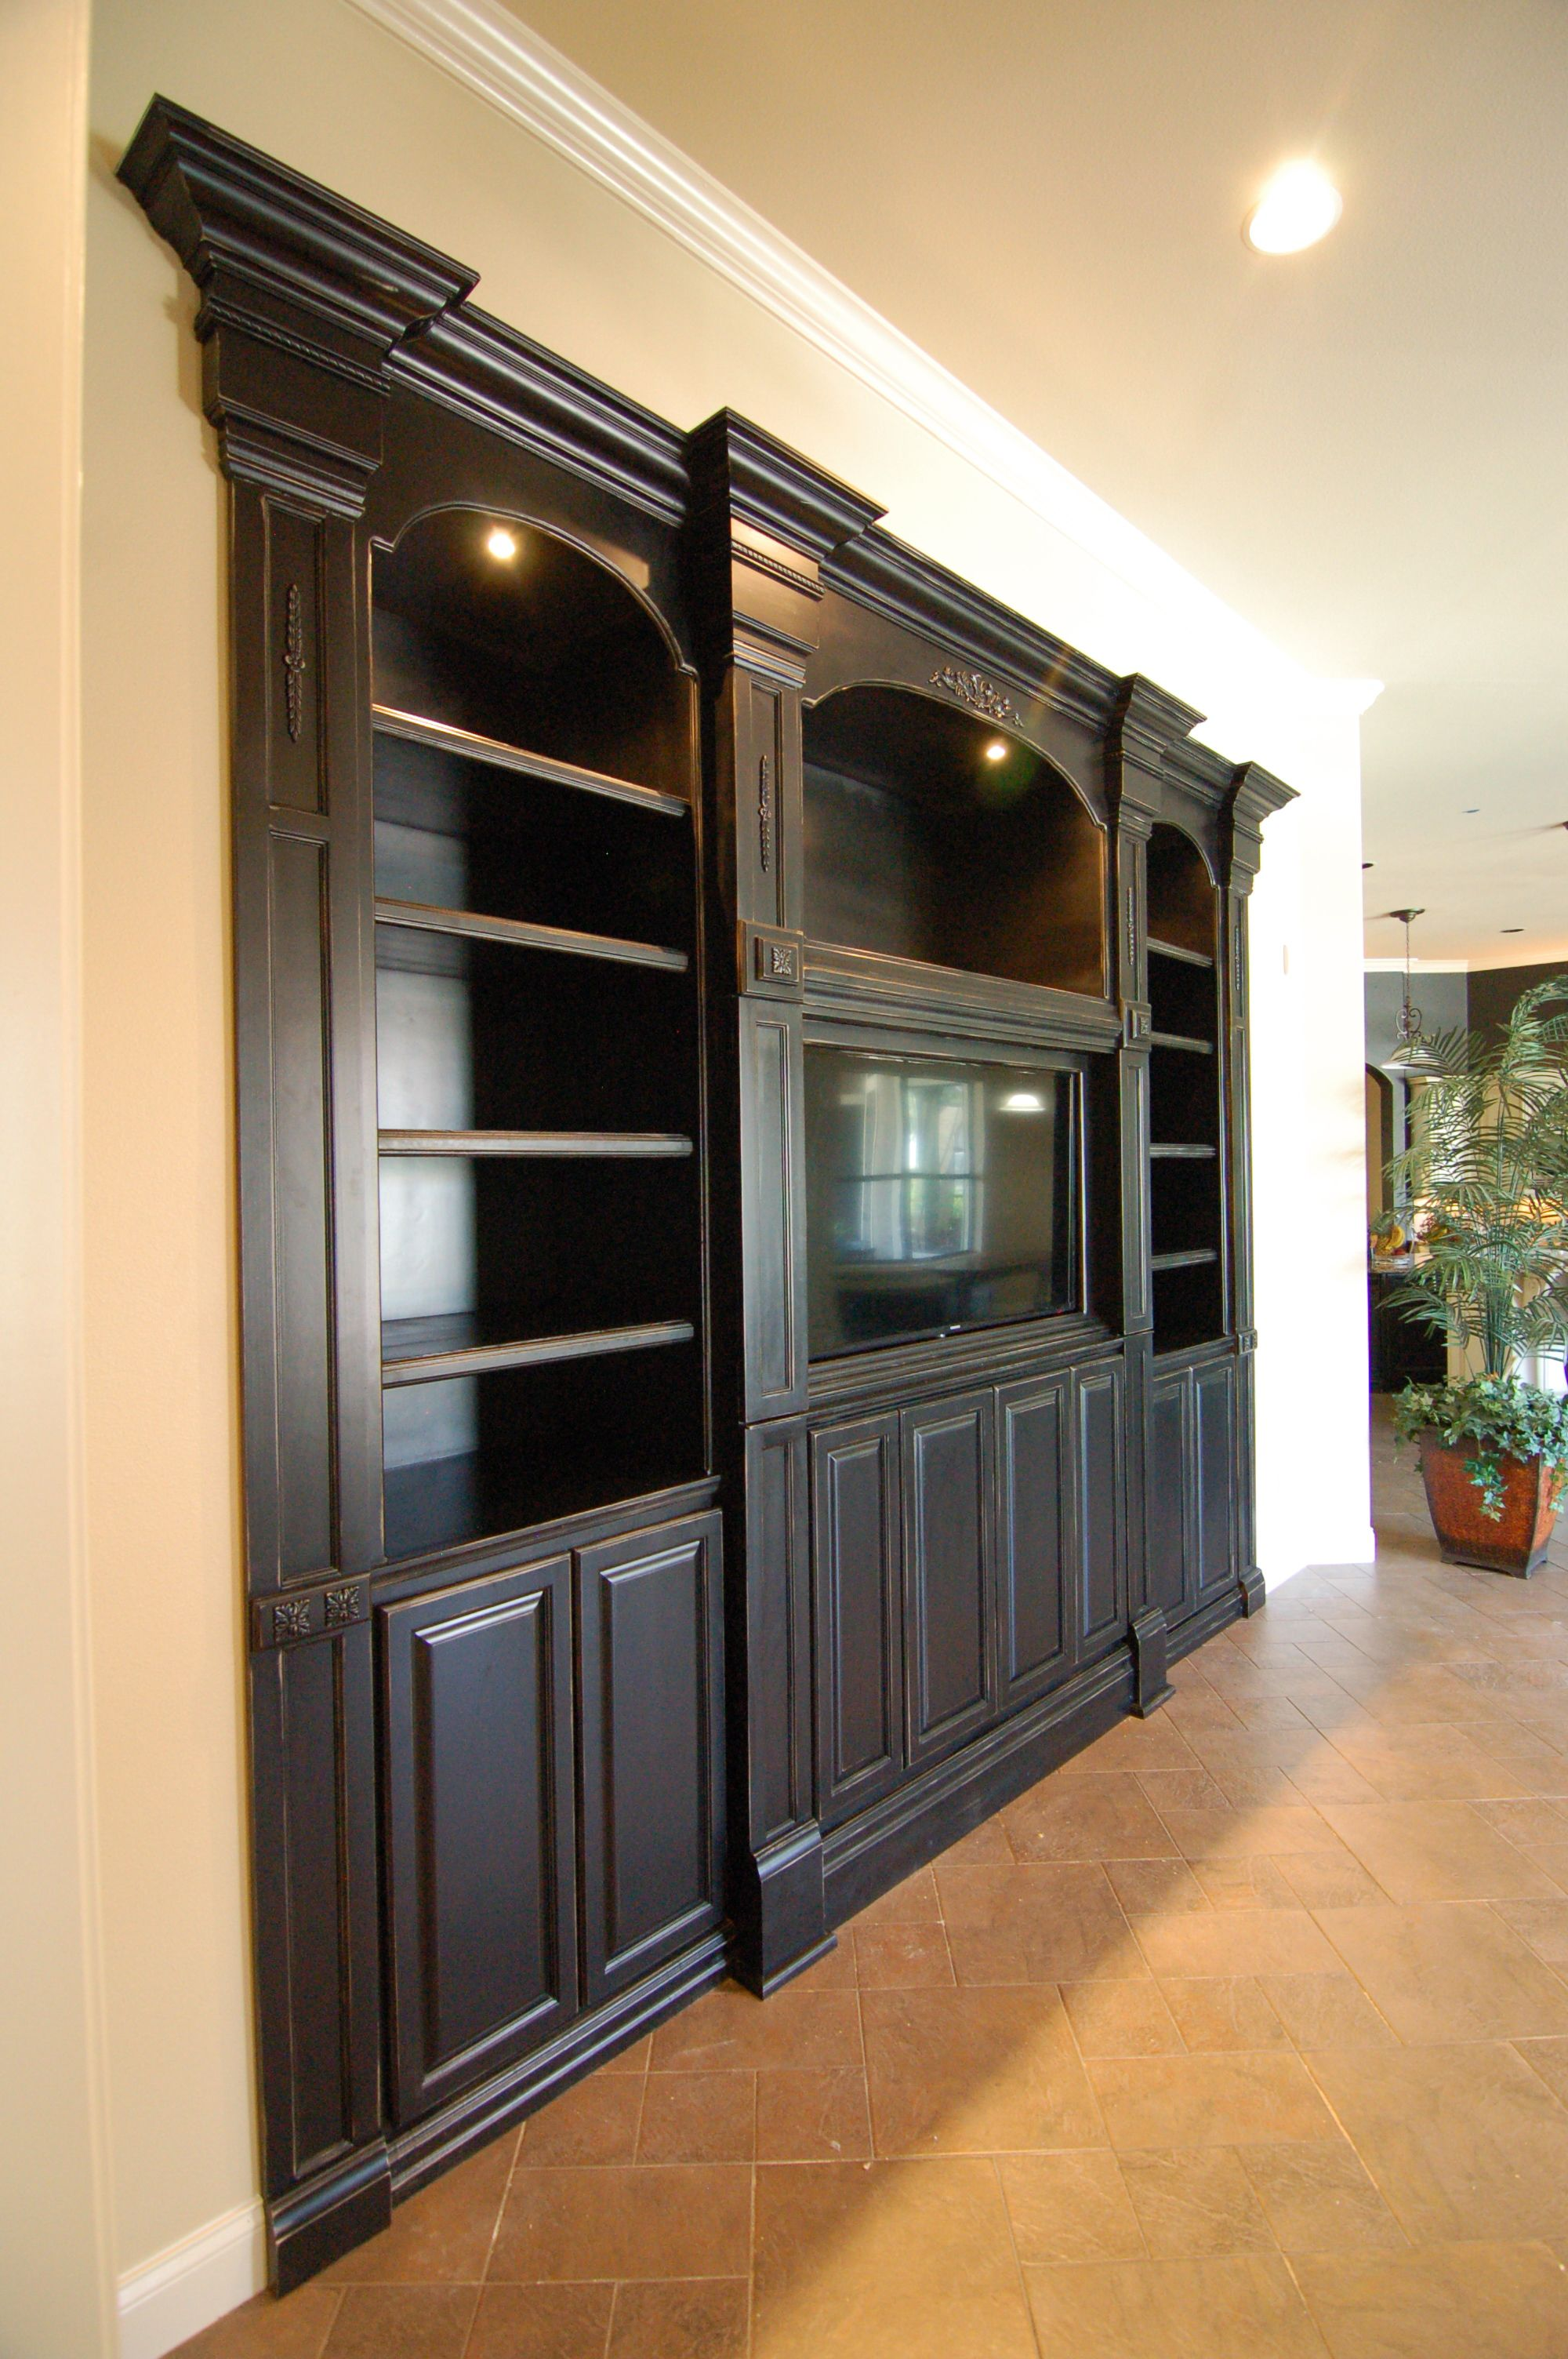 Built In Entertainment Center Design Ideas cool custom made entertainment center for deluxe family room ideas remarkable white custom made entertainment center Custom Built Entertainment Center